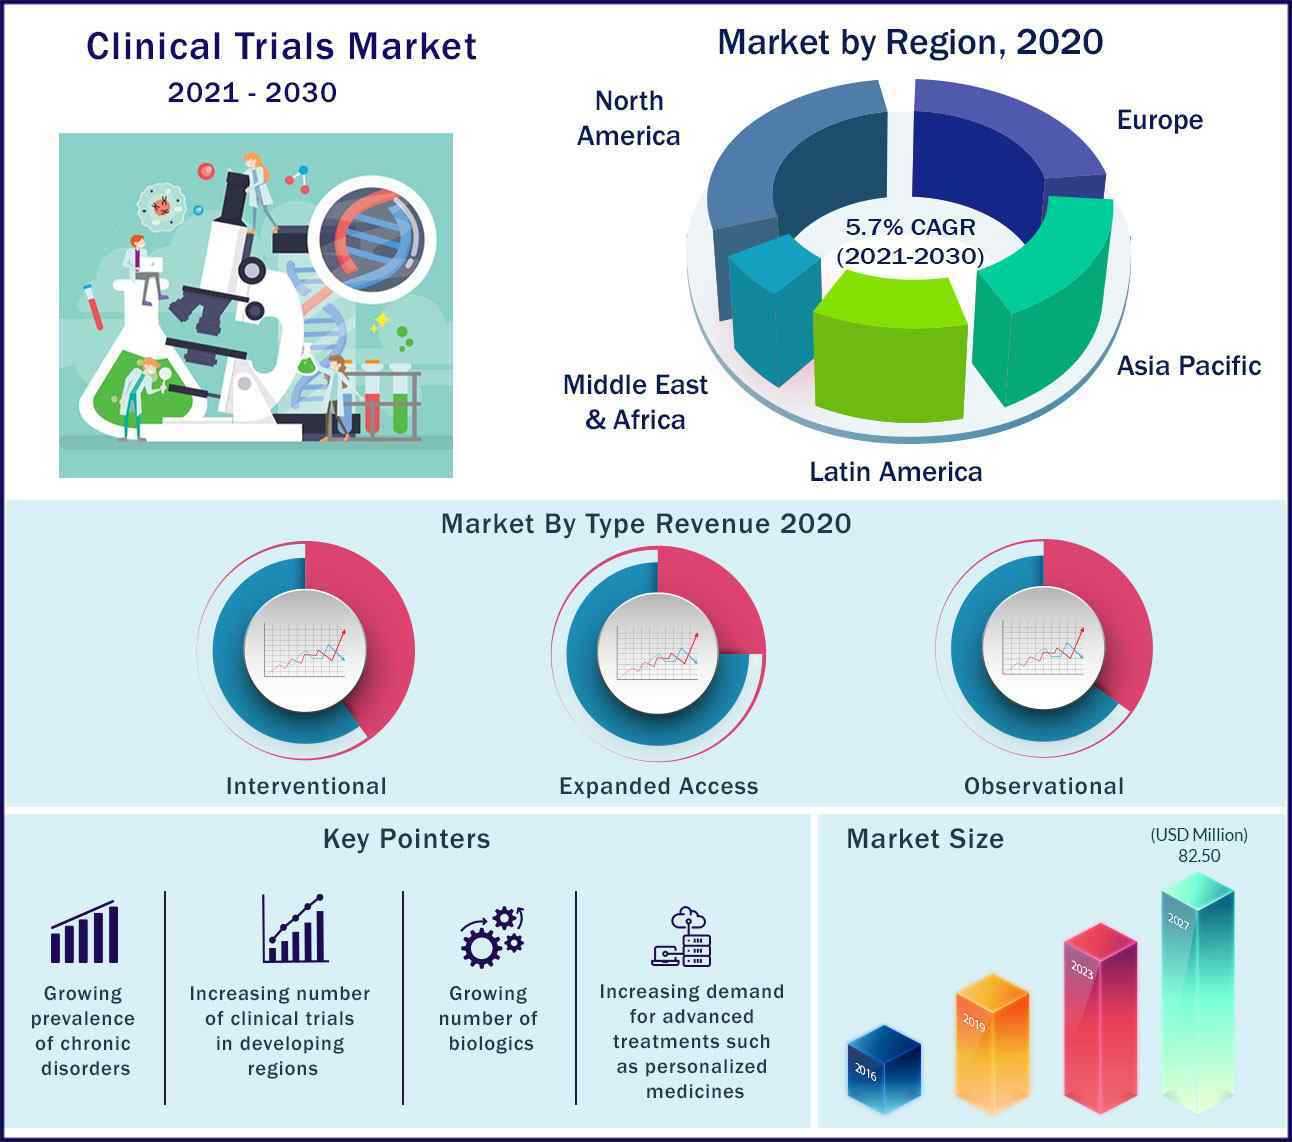 Global Clinical Trials Market 2021 to 2030